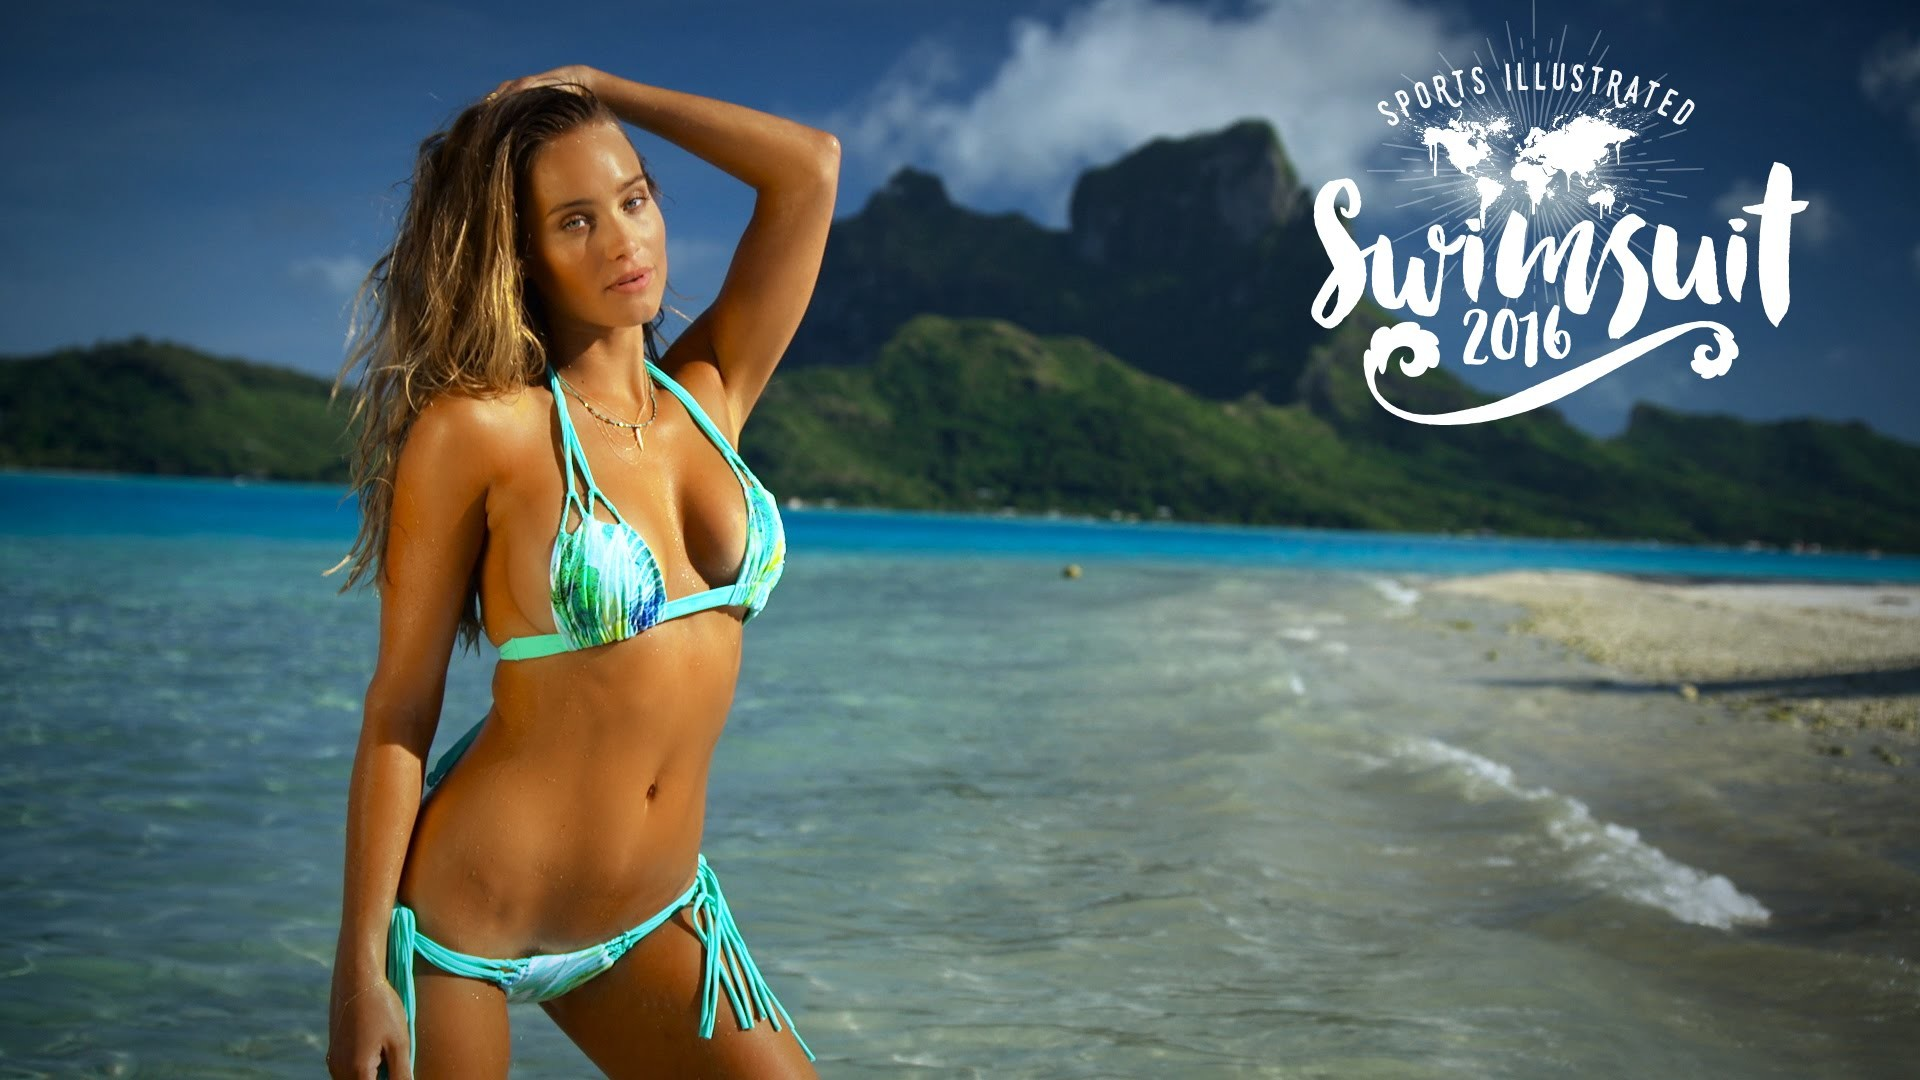 Sports Illustrated Swimsuit Wallpaper 1920x1080 ①